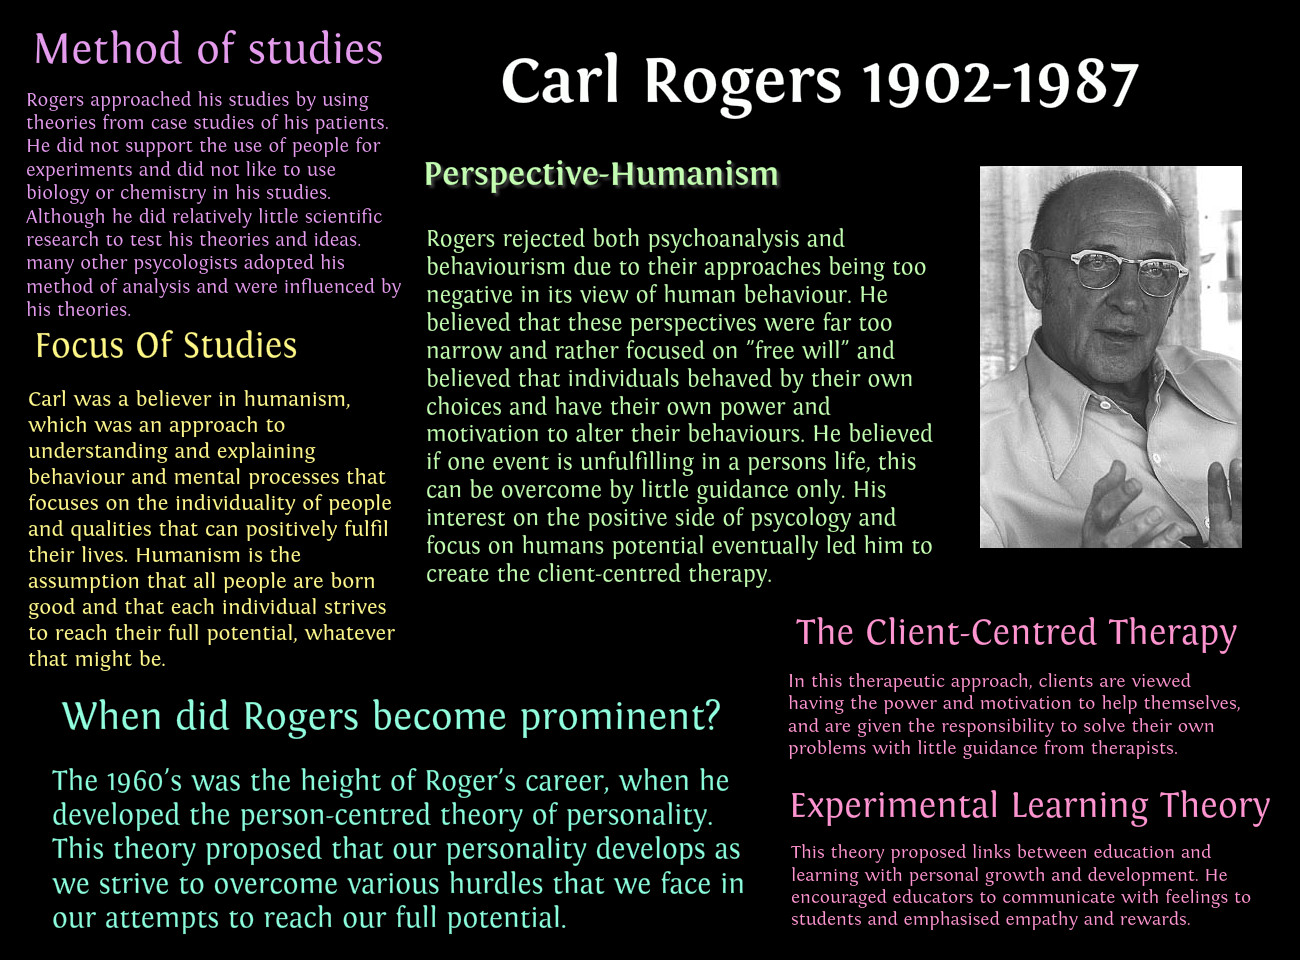 pros and cons of humanistic theory carl rogers According to psychologists, one of the advantages of the humanistic approach is the perspective that mankindâs nature is relatively good in addition, the approach emphasizes the ability of mankind to change at his free will.